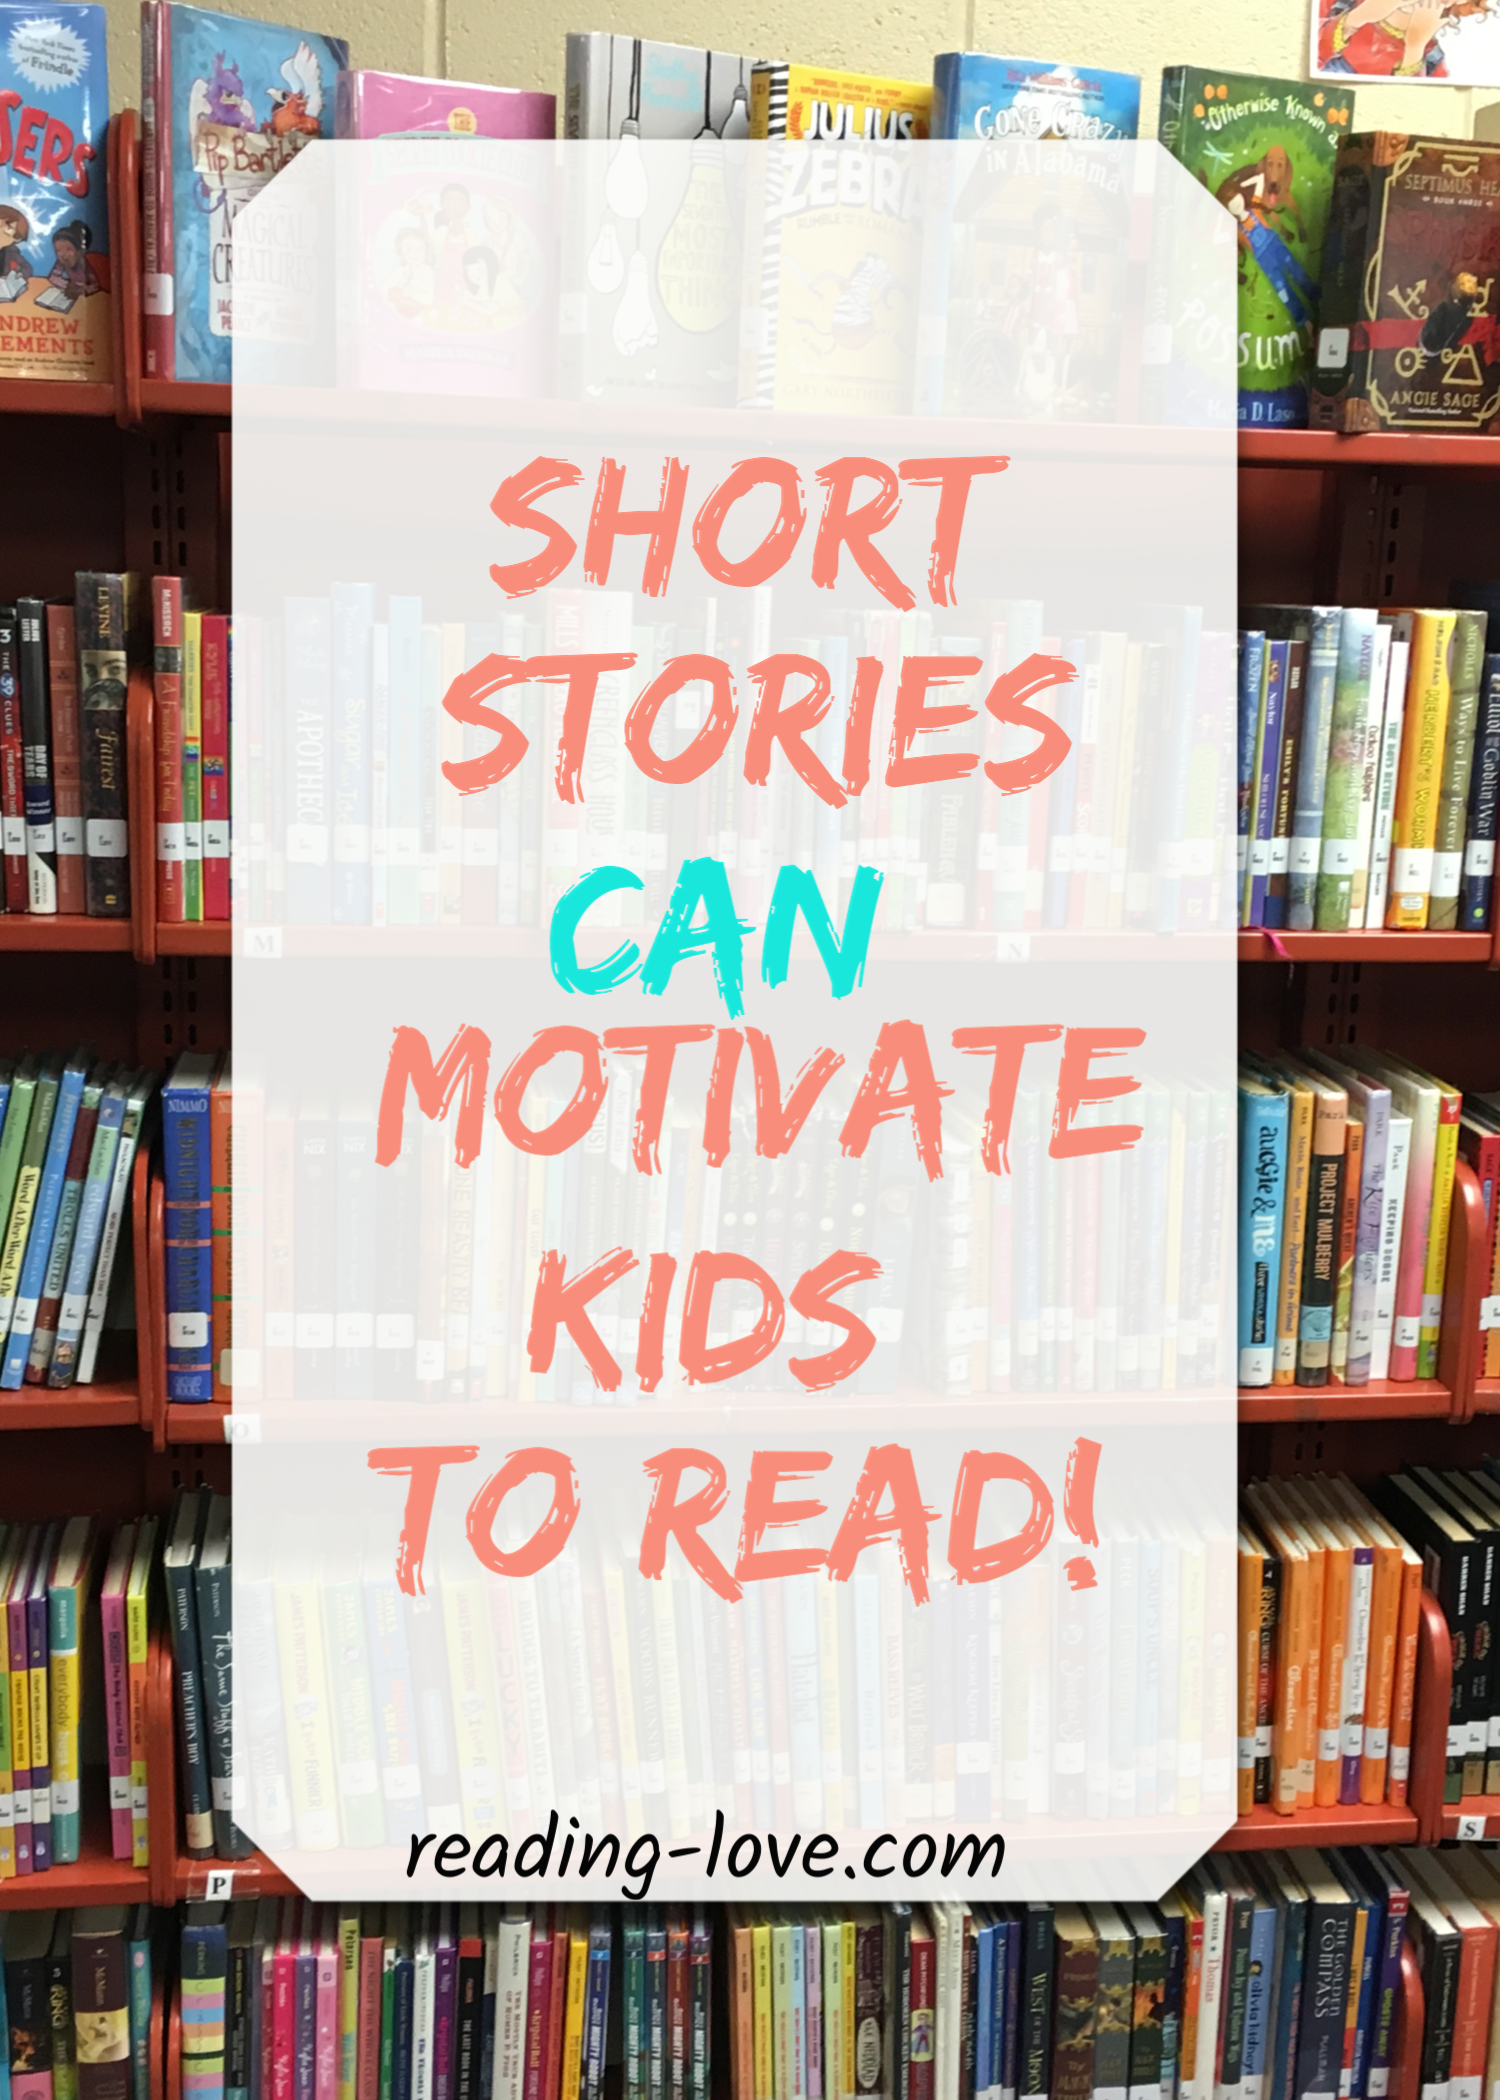 can motivate kids to read